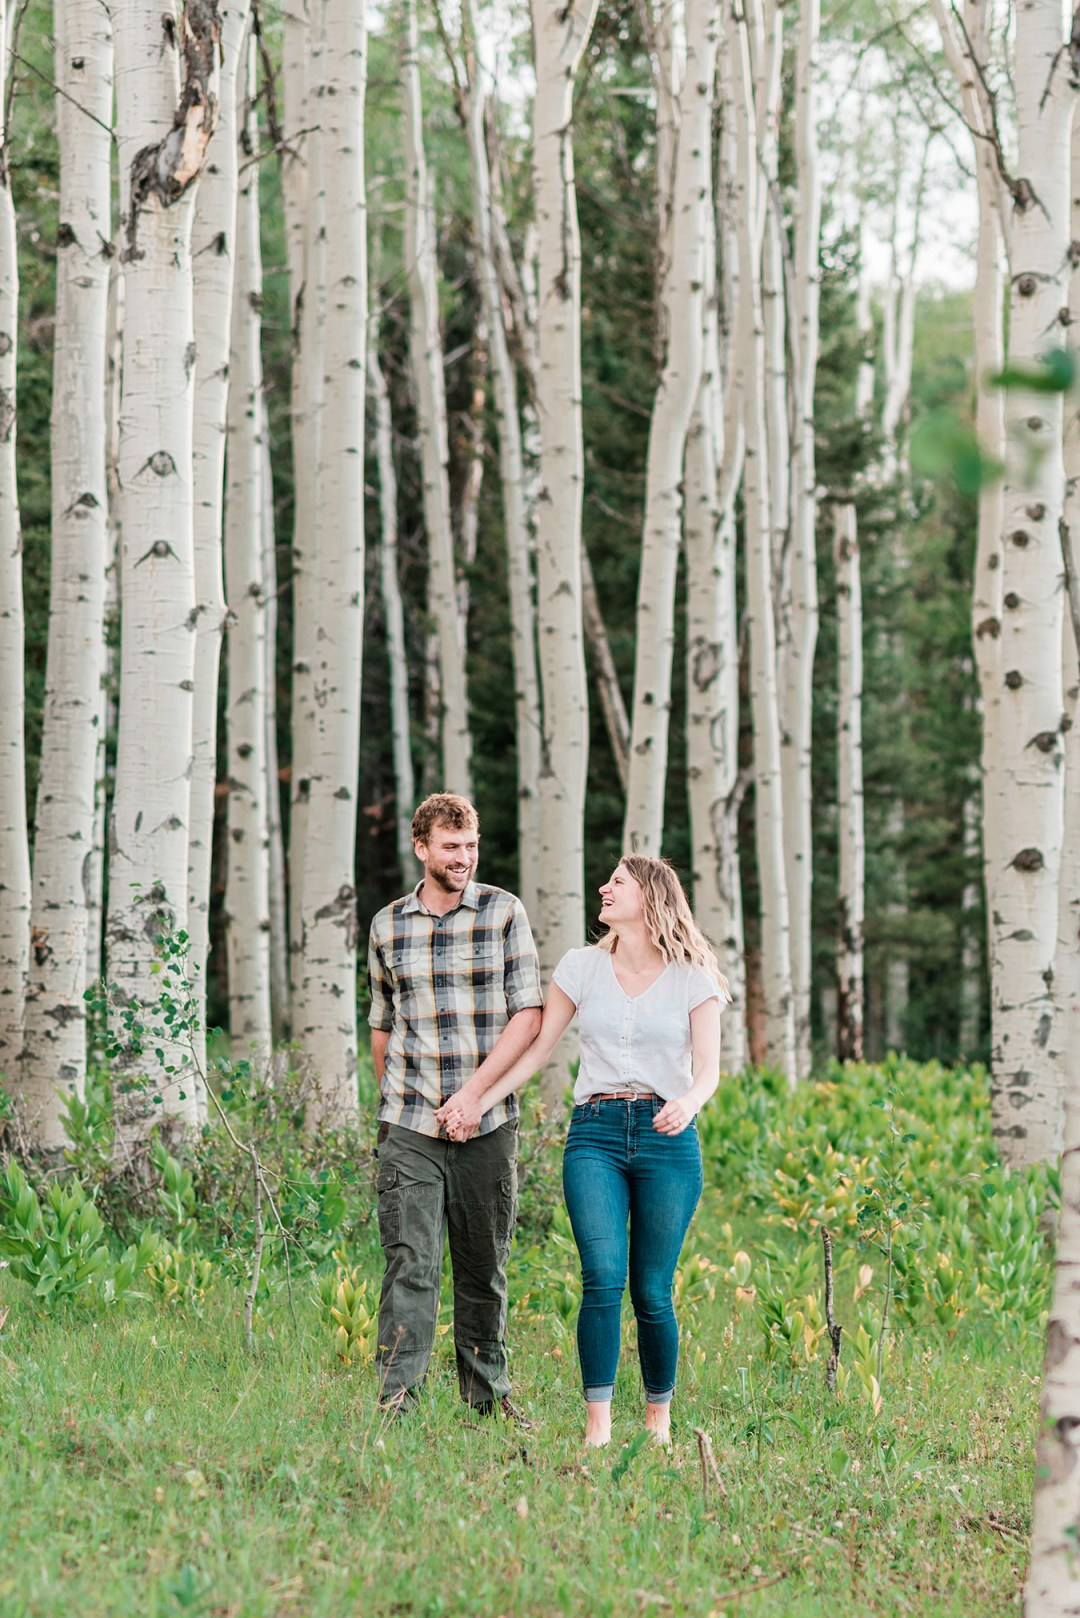 Annie & Taylorwalk through an Aspen glen for their Glenwood Springs Engagement Photos